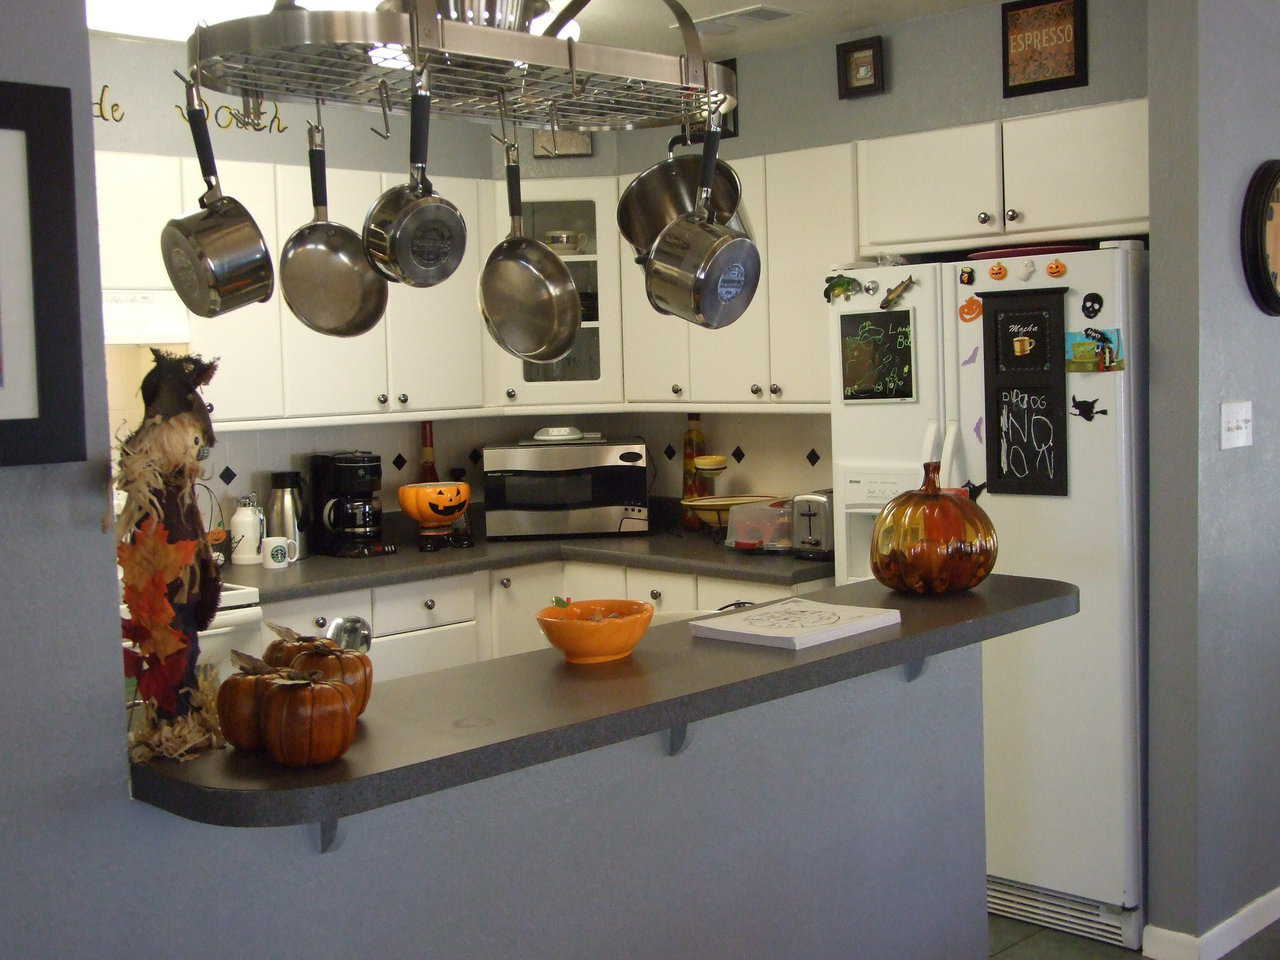 Kitchen — Easy-to-reach preparation areas and hanging cookware make this kitchen an easy and enjoyable workplace.